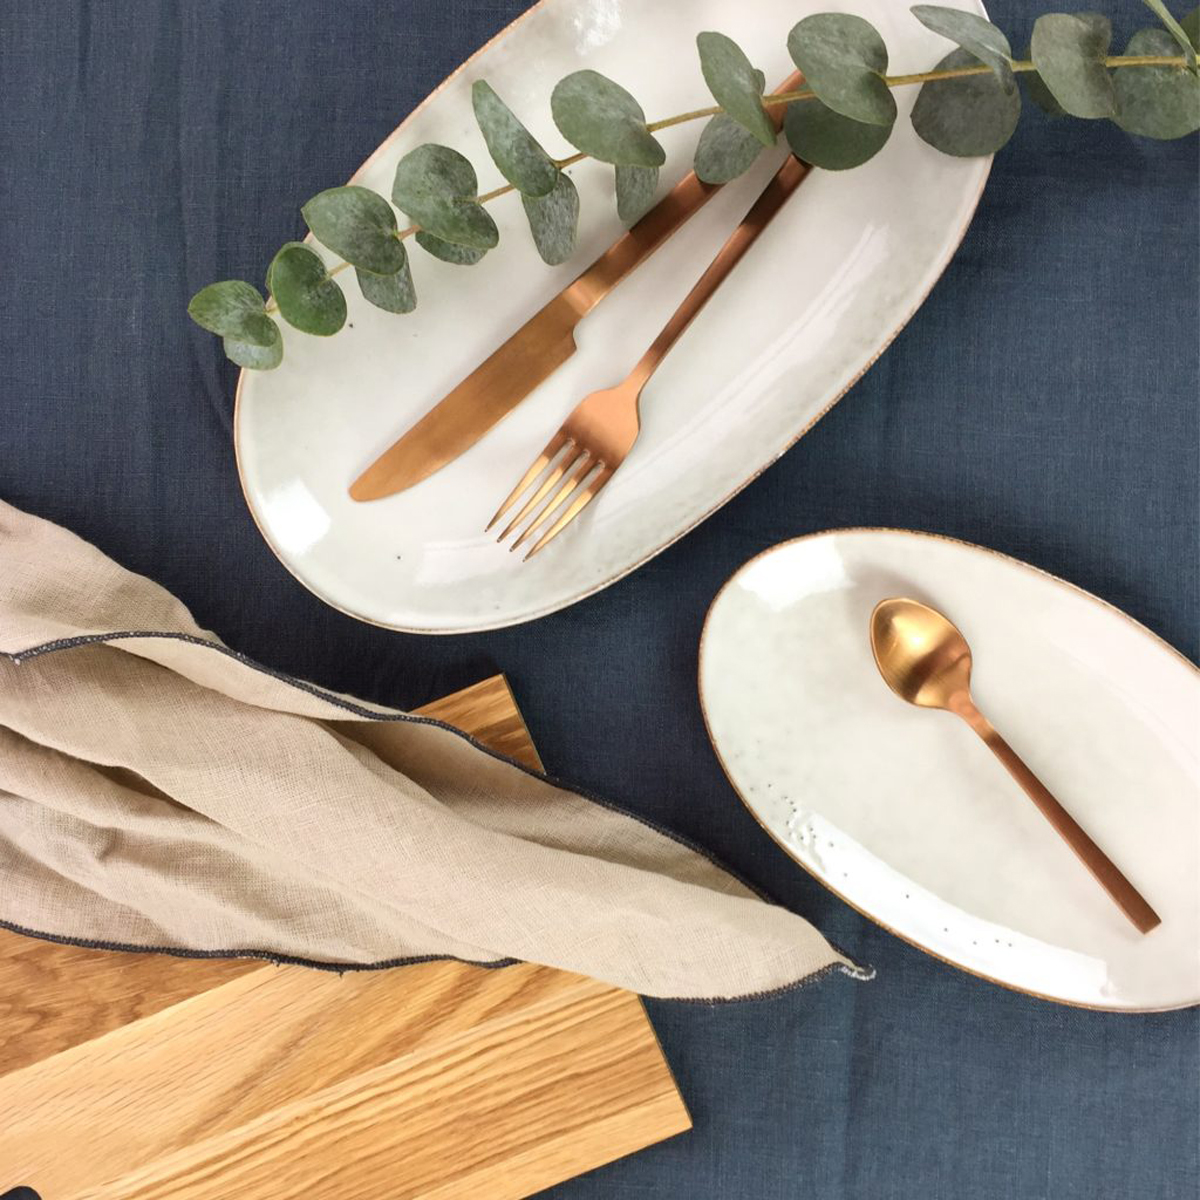 nordic sand oval plate on blue table cloth